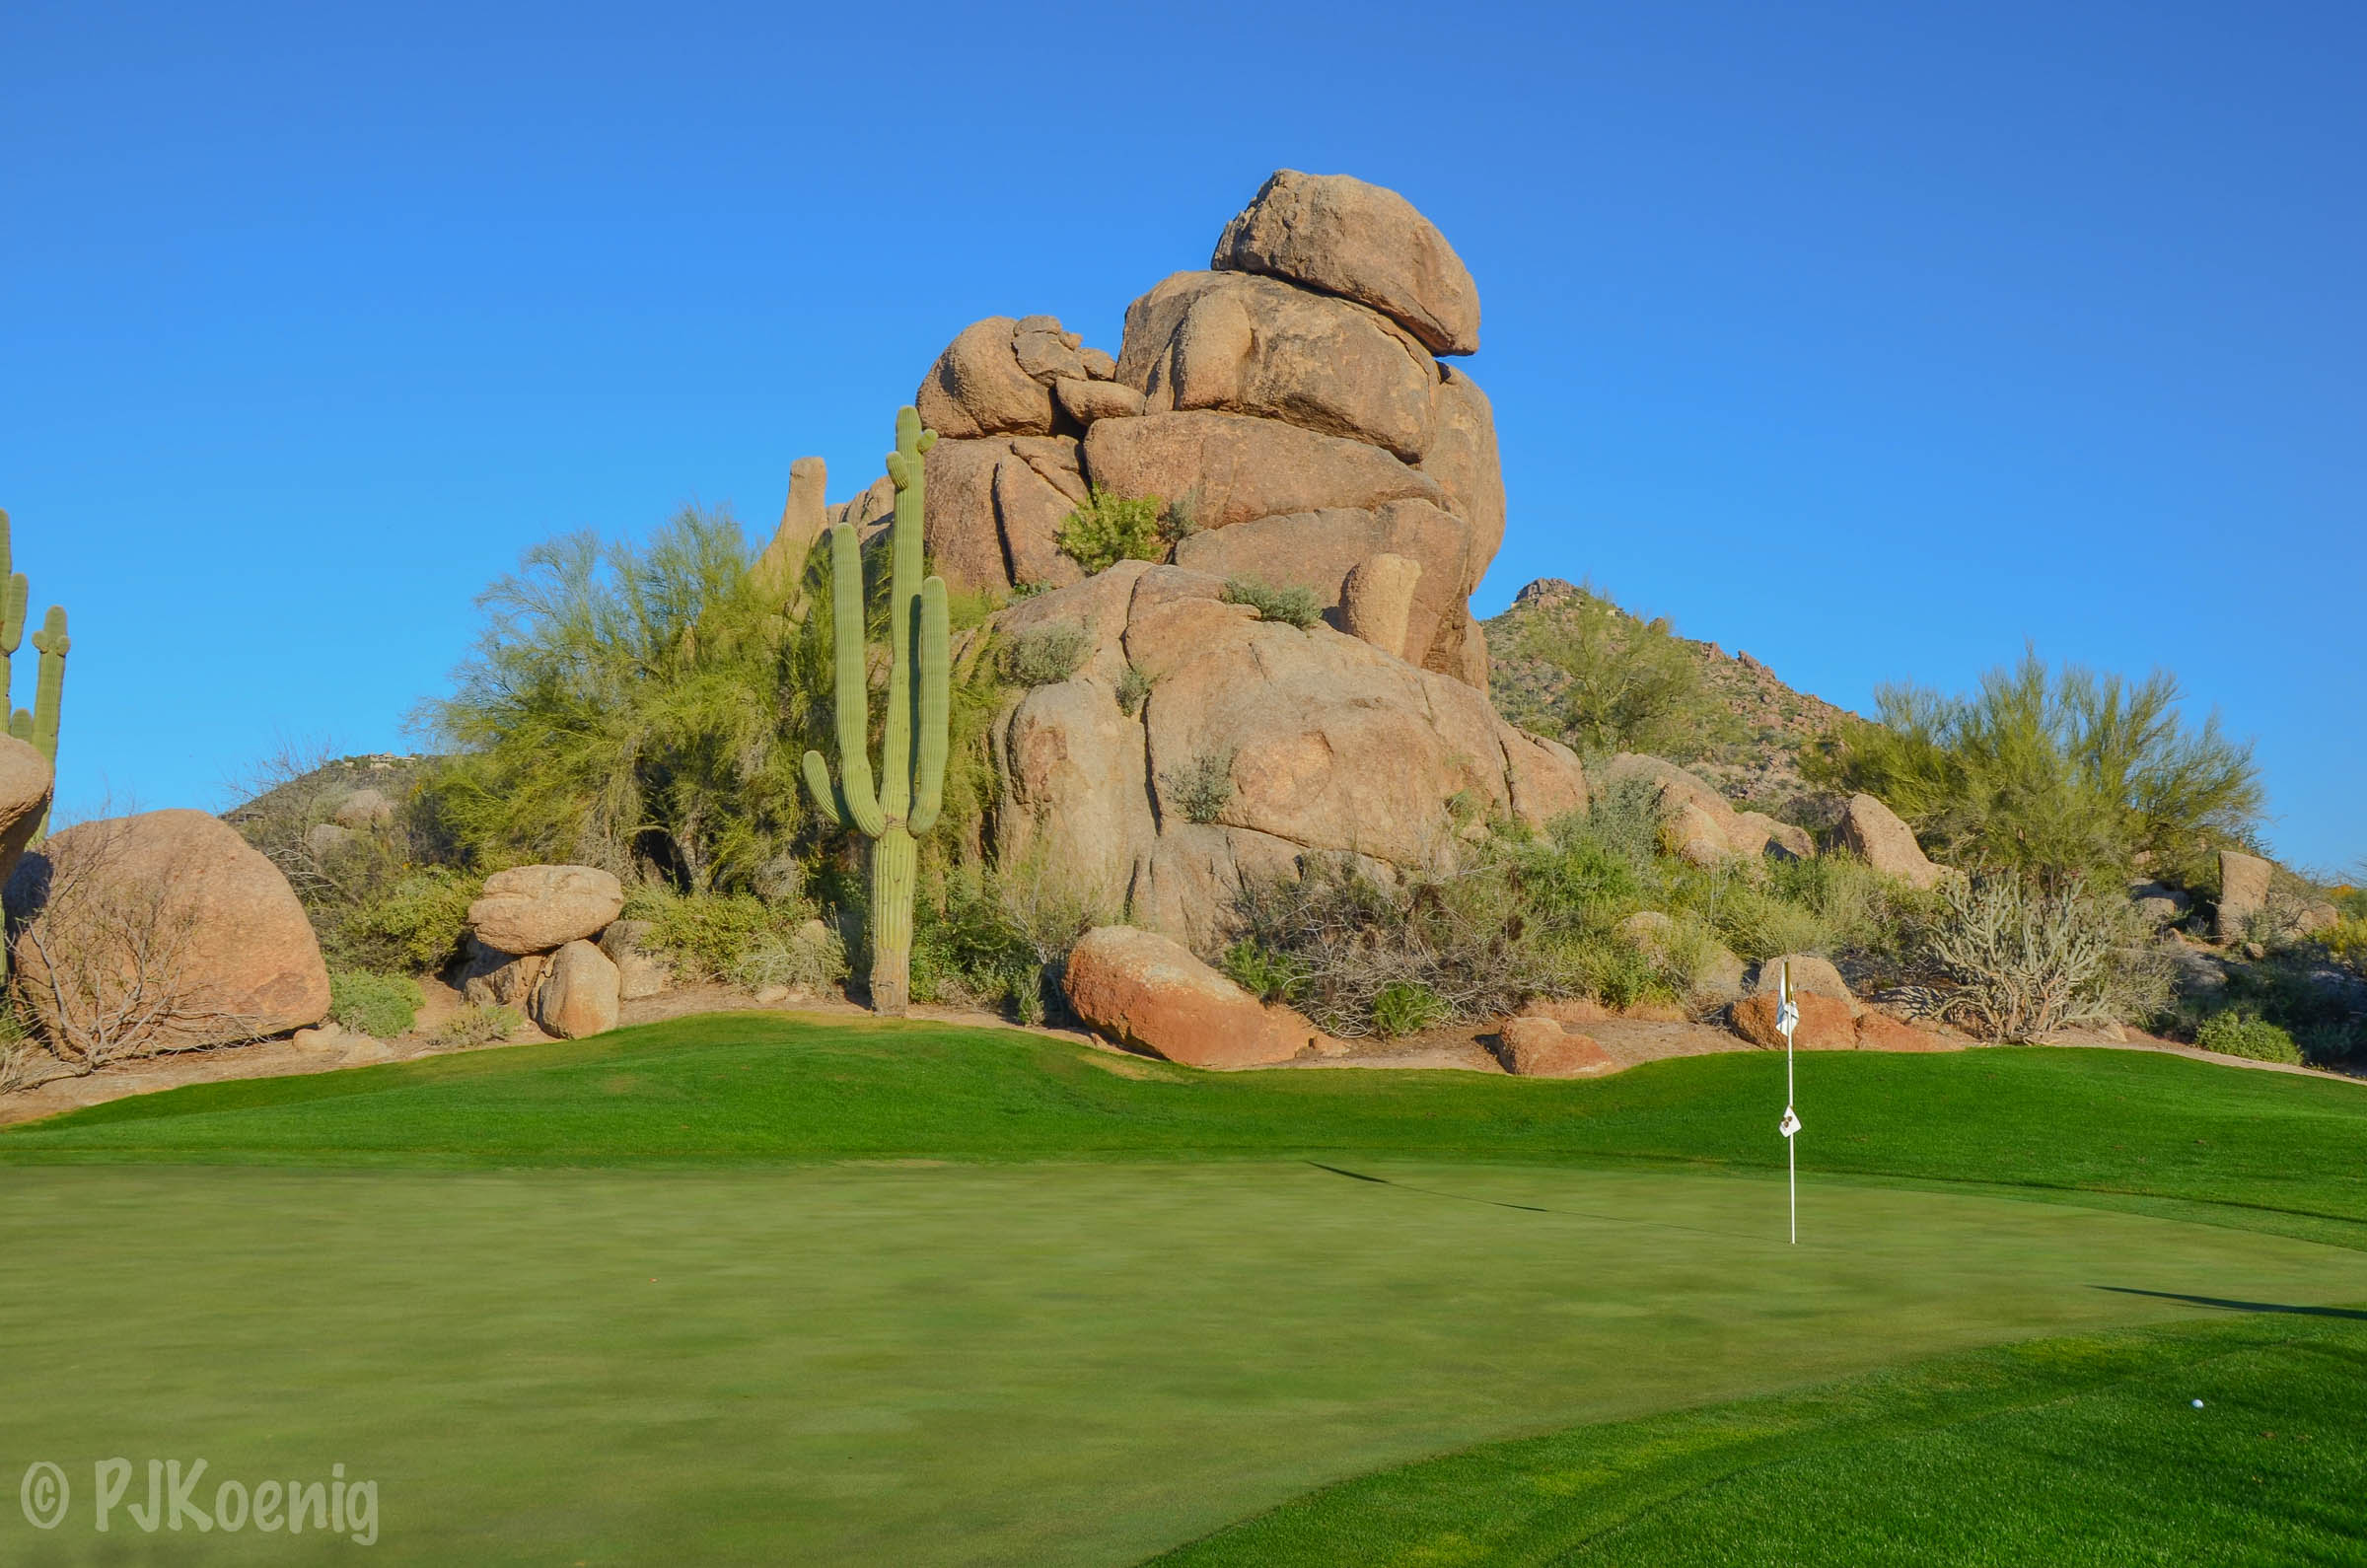 The 1st hole on The Boulders South Course.